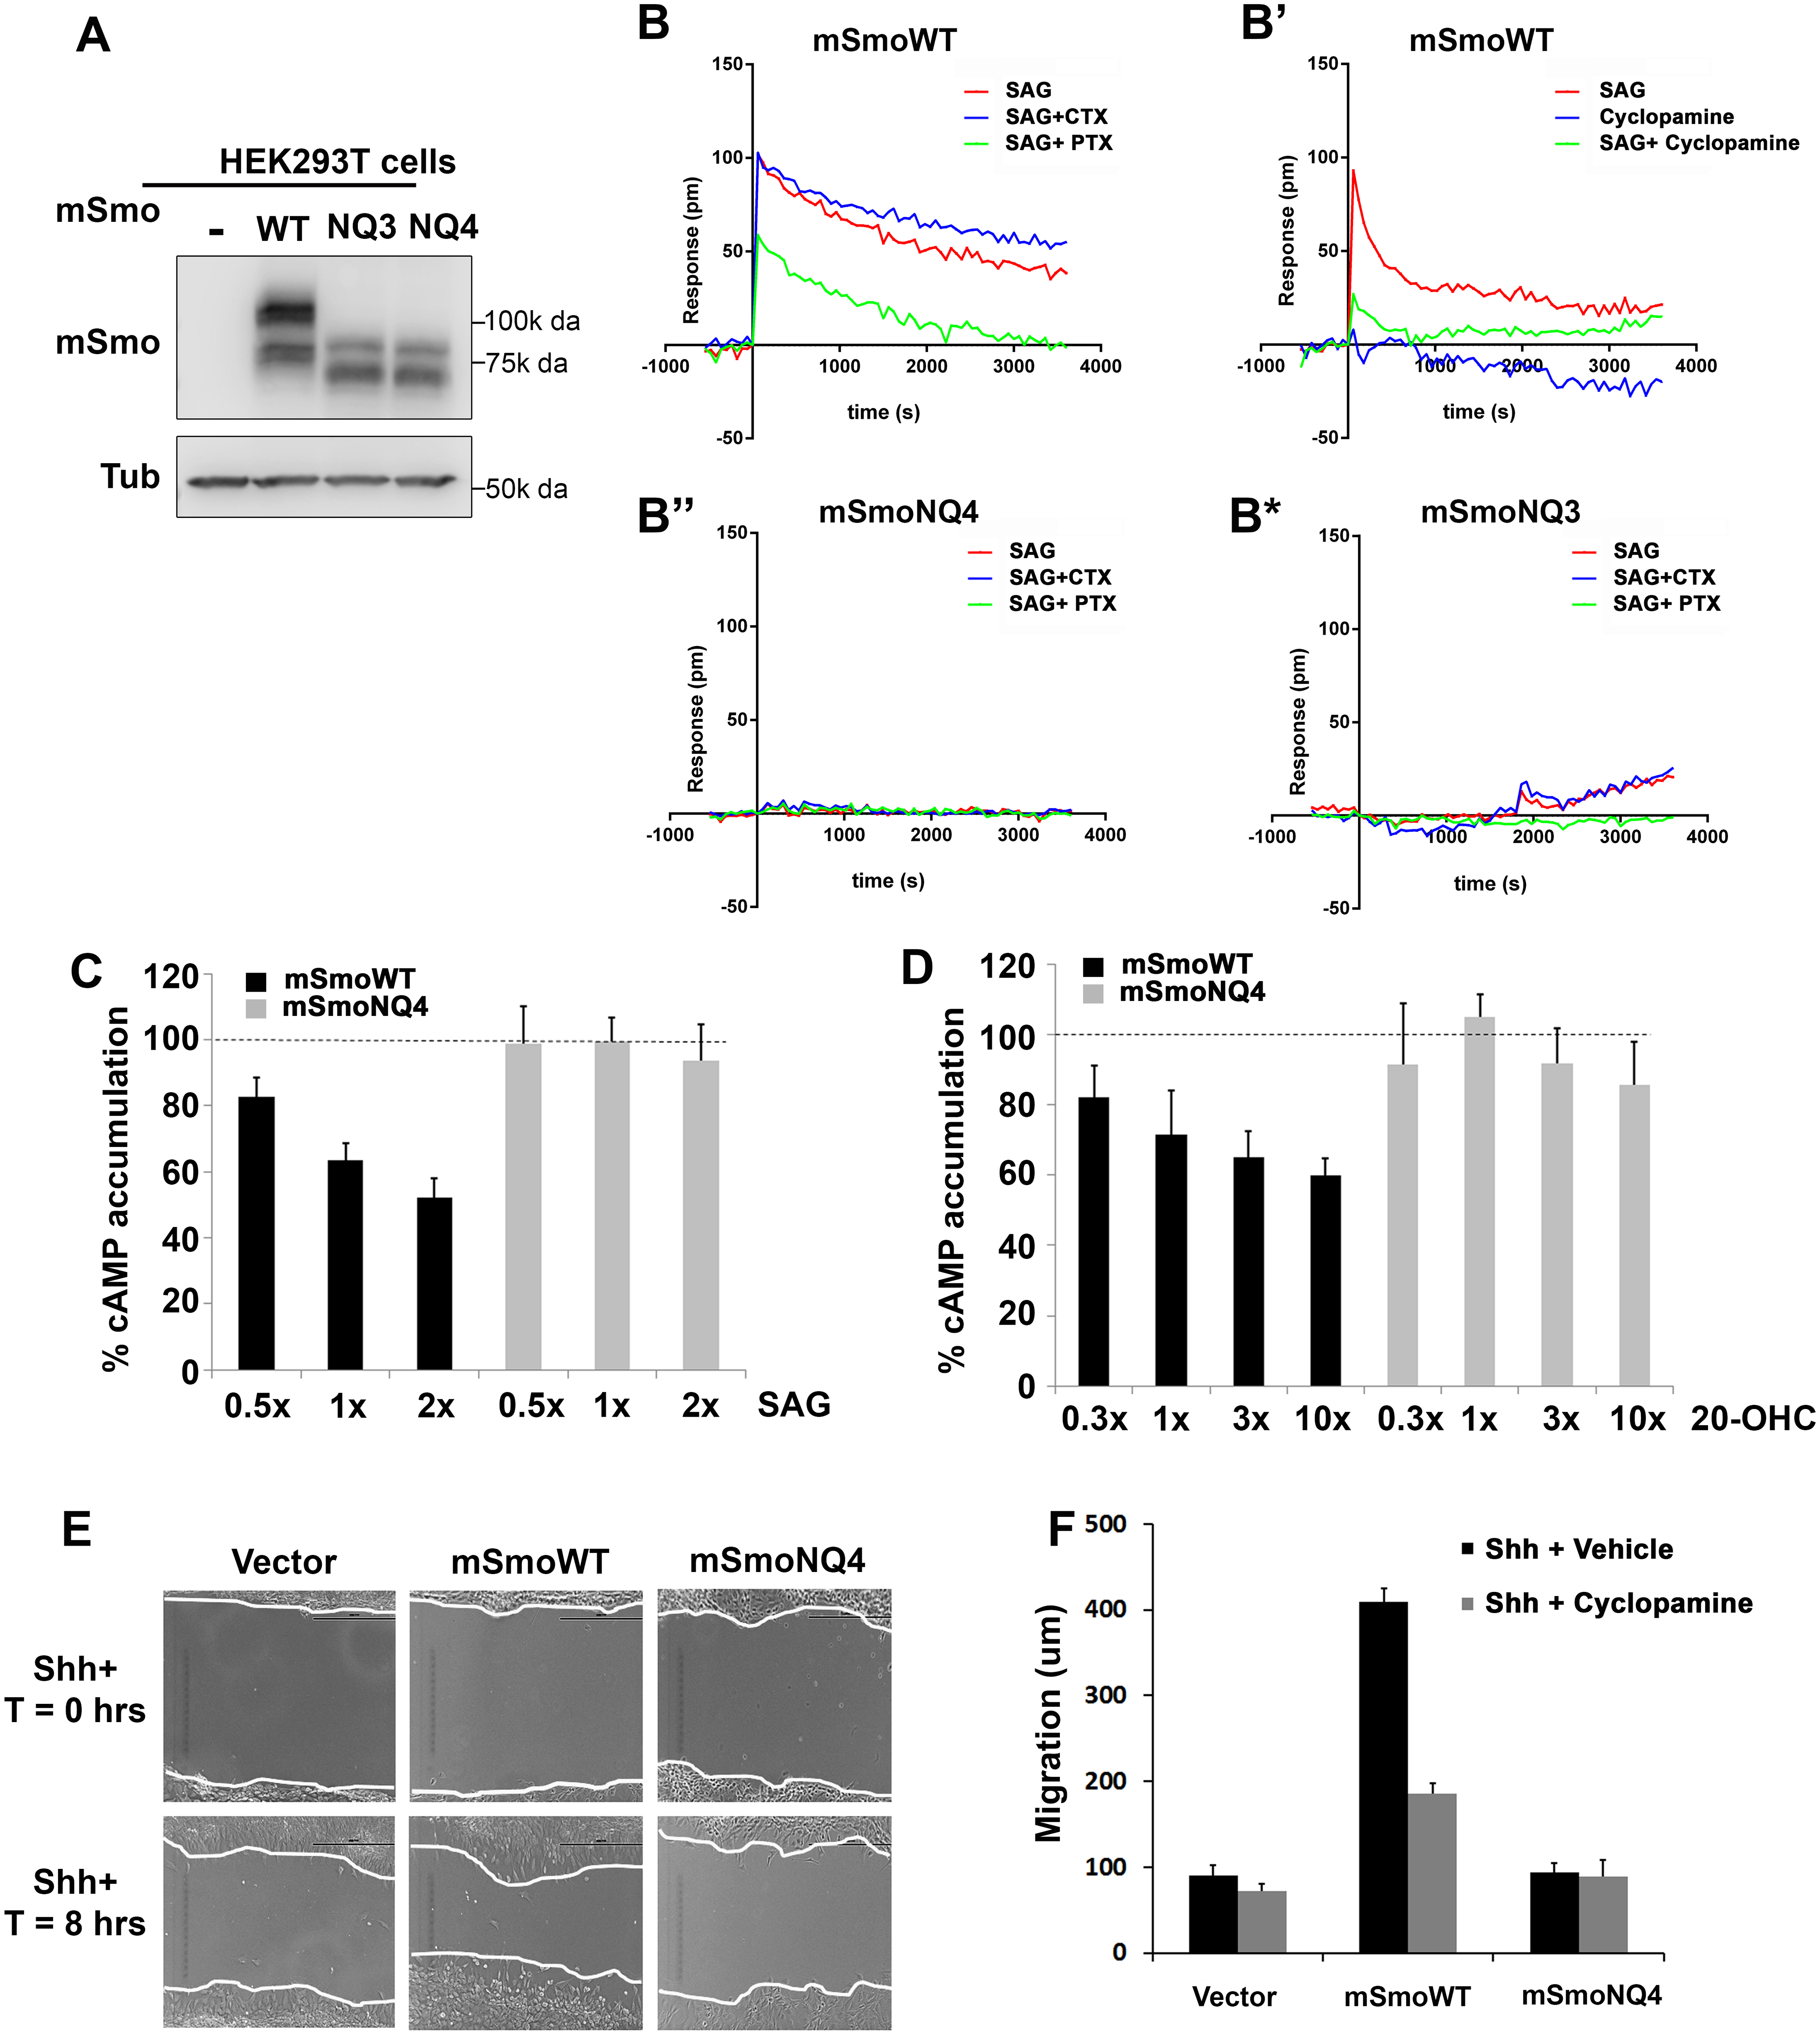 Glycosylation is required for non-canonical mSmo signaling.